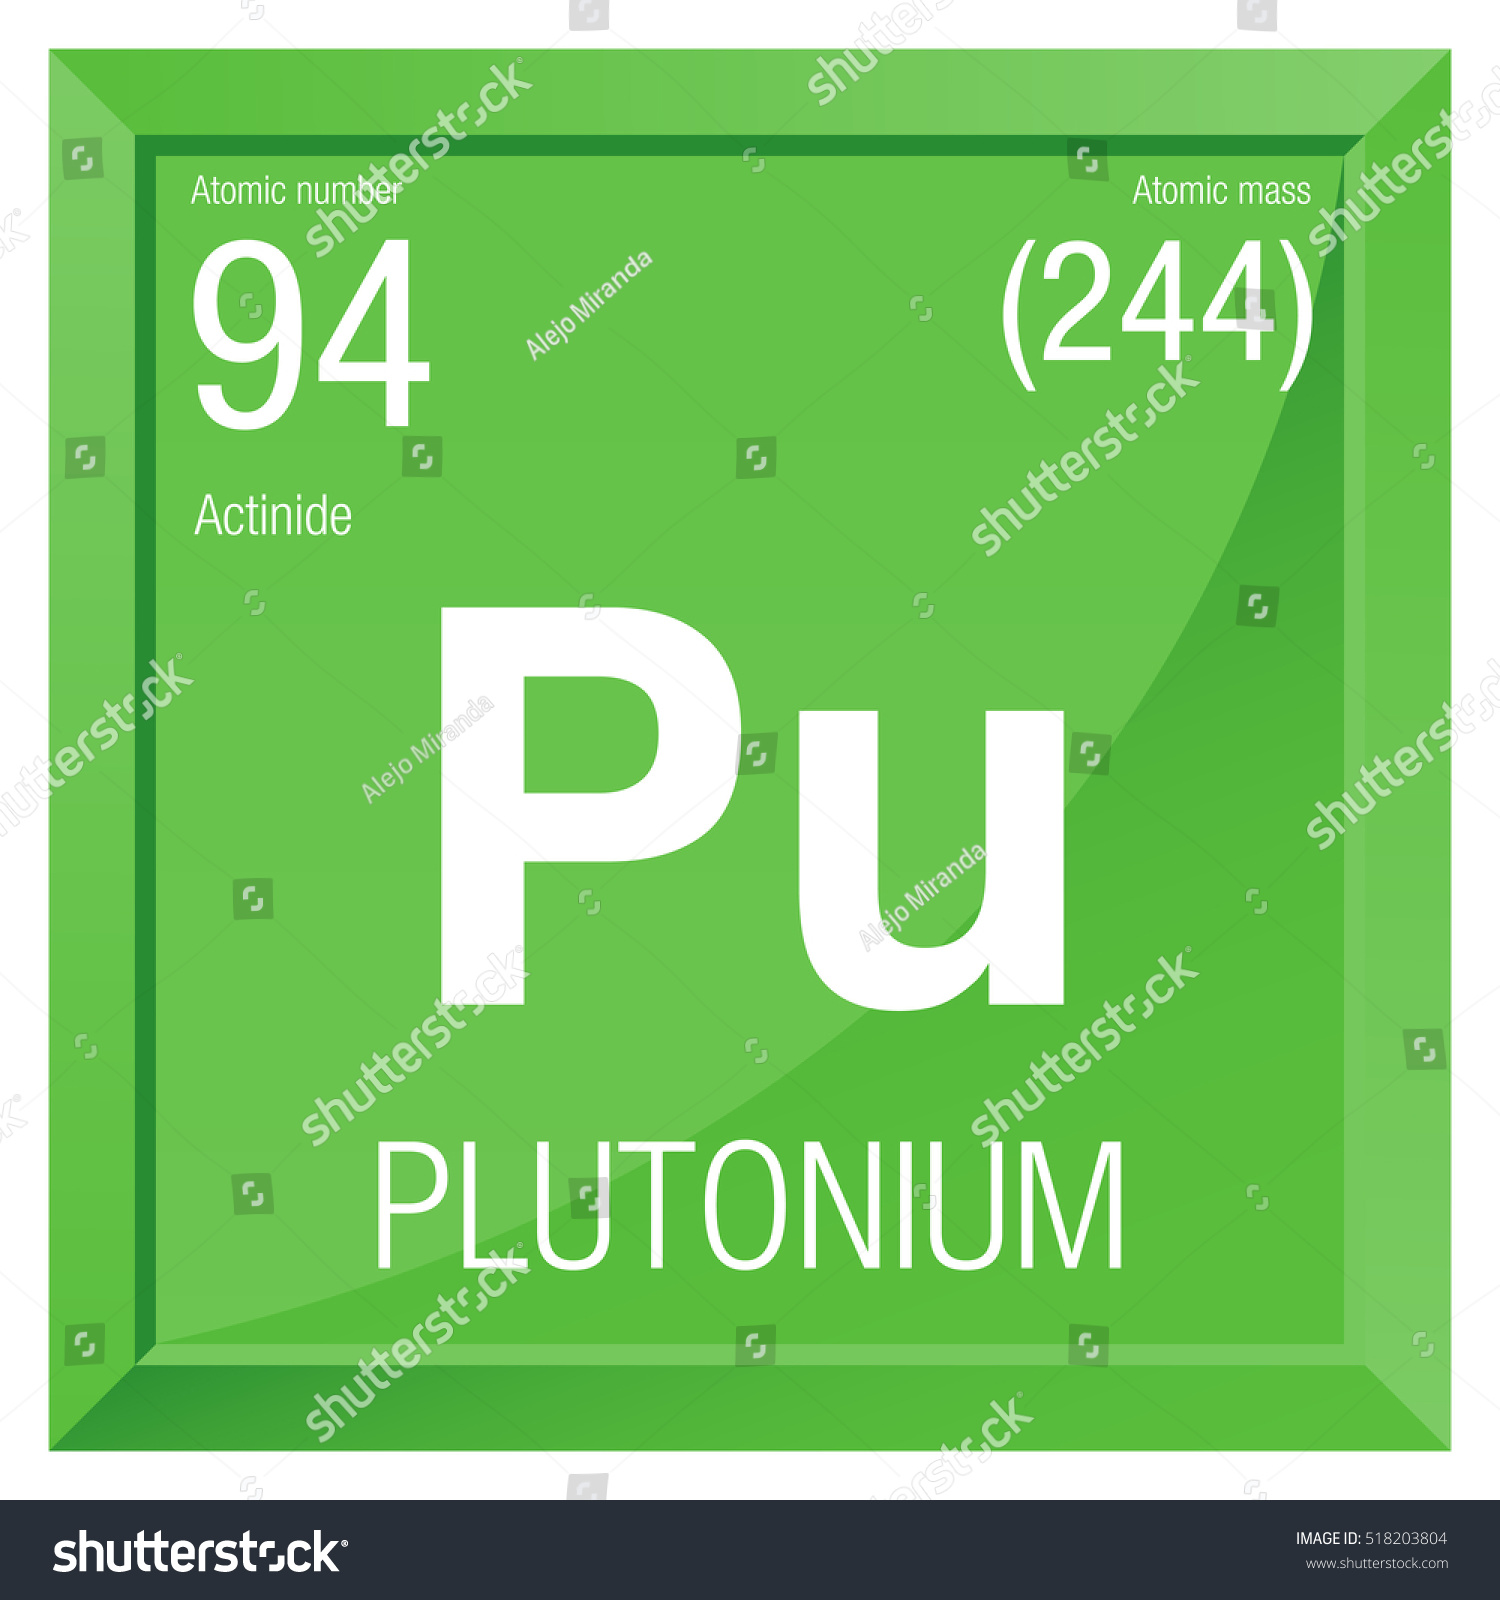 Plutonium symbol periodic table image collections periodic table plutonium symbol periodic table images periodic table images plutonium symbol periodic table image collections periodic table gamestrikefo Image collections